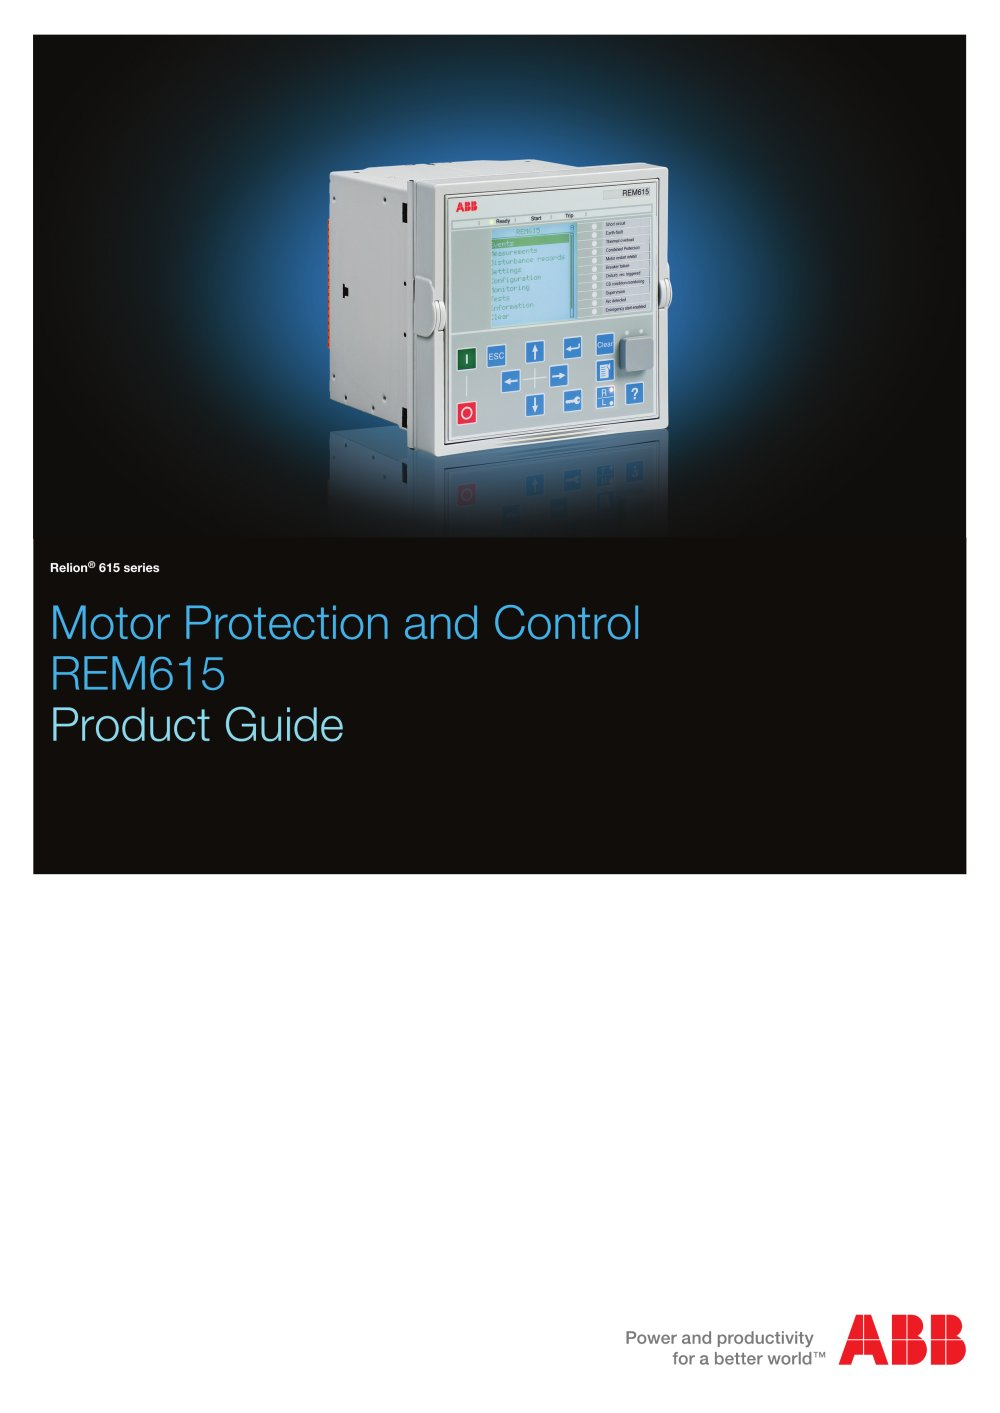 Motor Protection and Control REM615 Product Guide - 1 / 56 Pages